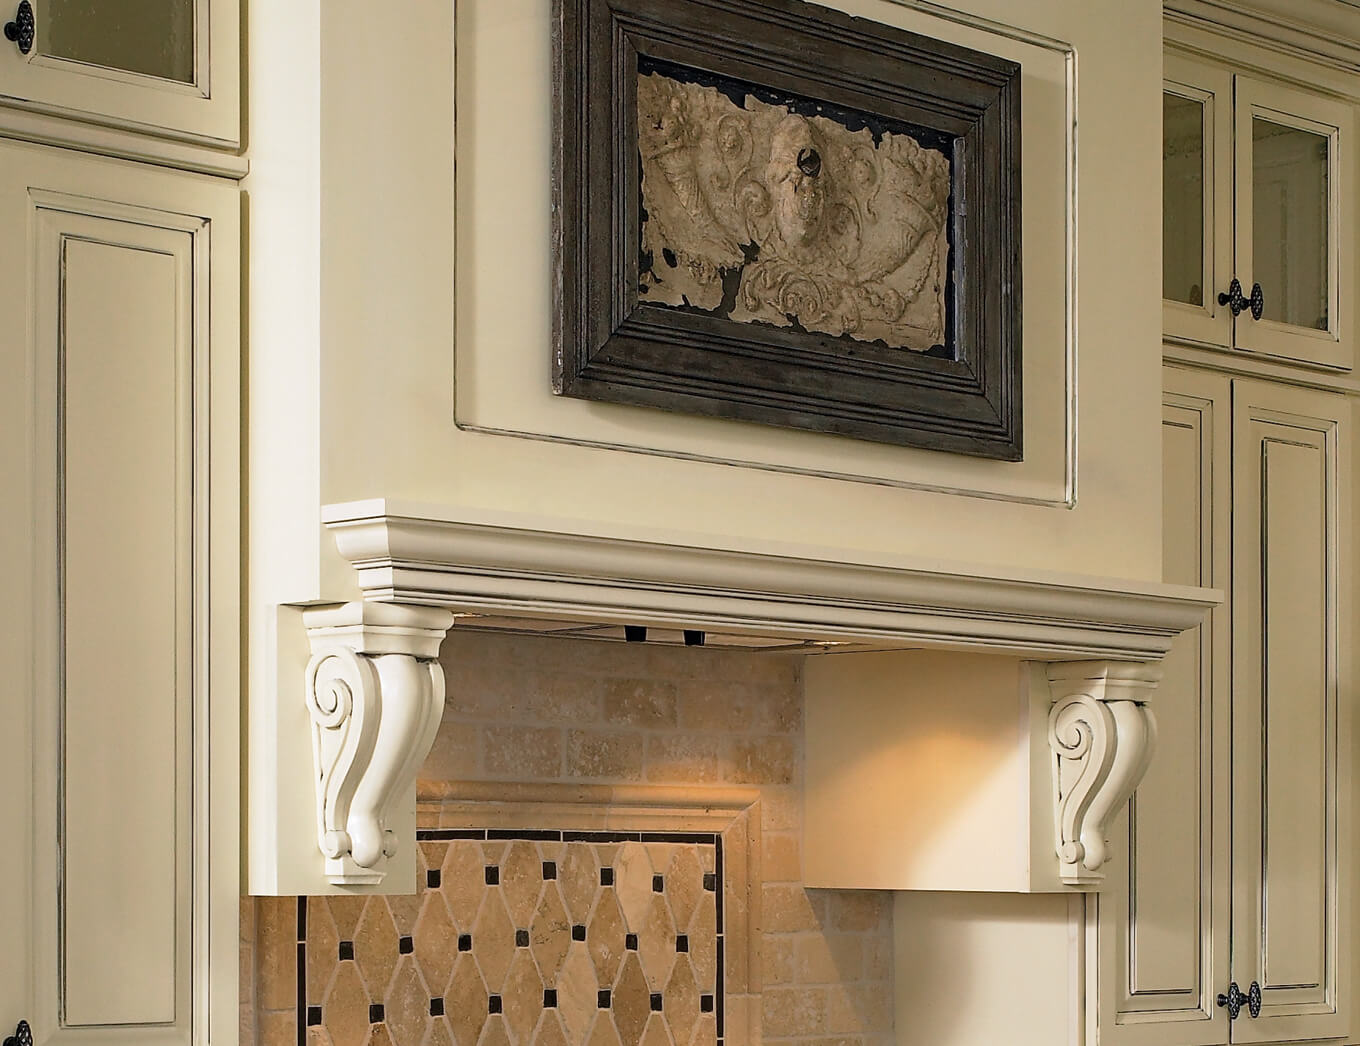 Castlewood-Classic-Corbel-SY-CA-105-in-Mantel-Hood-Application